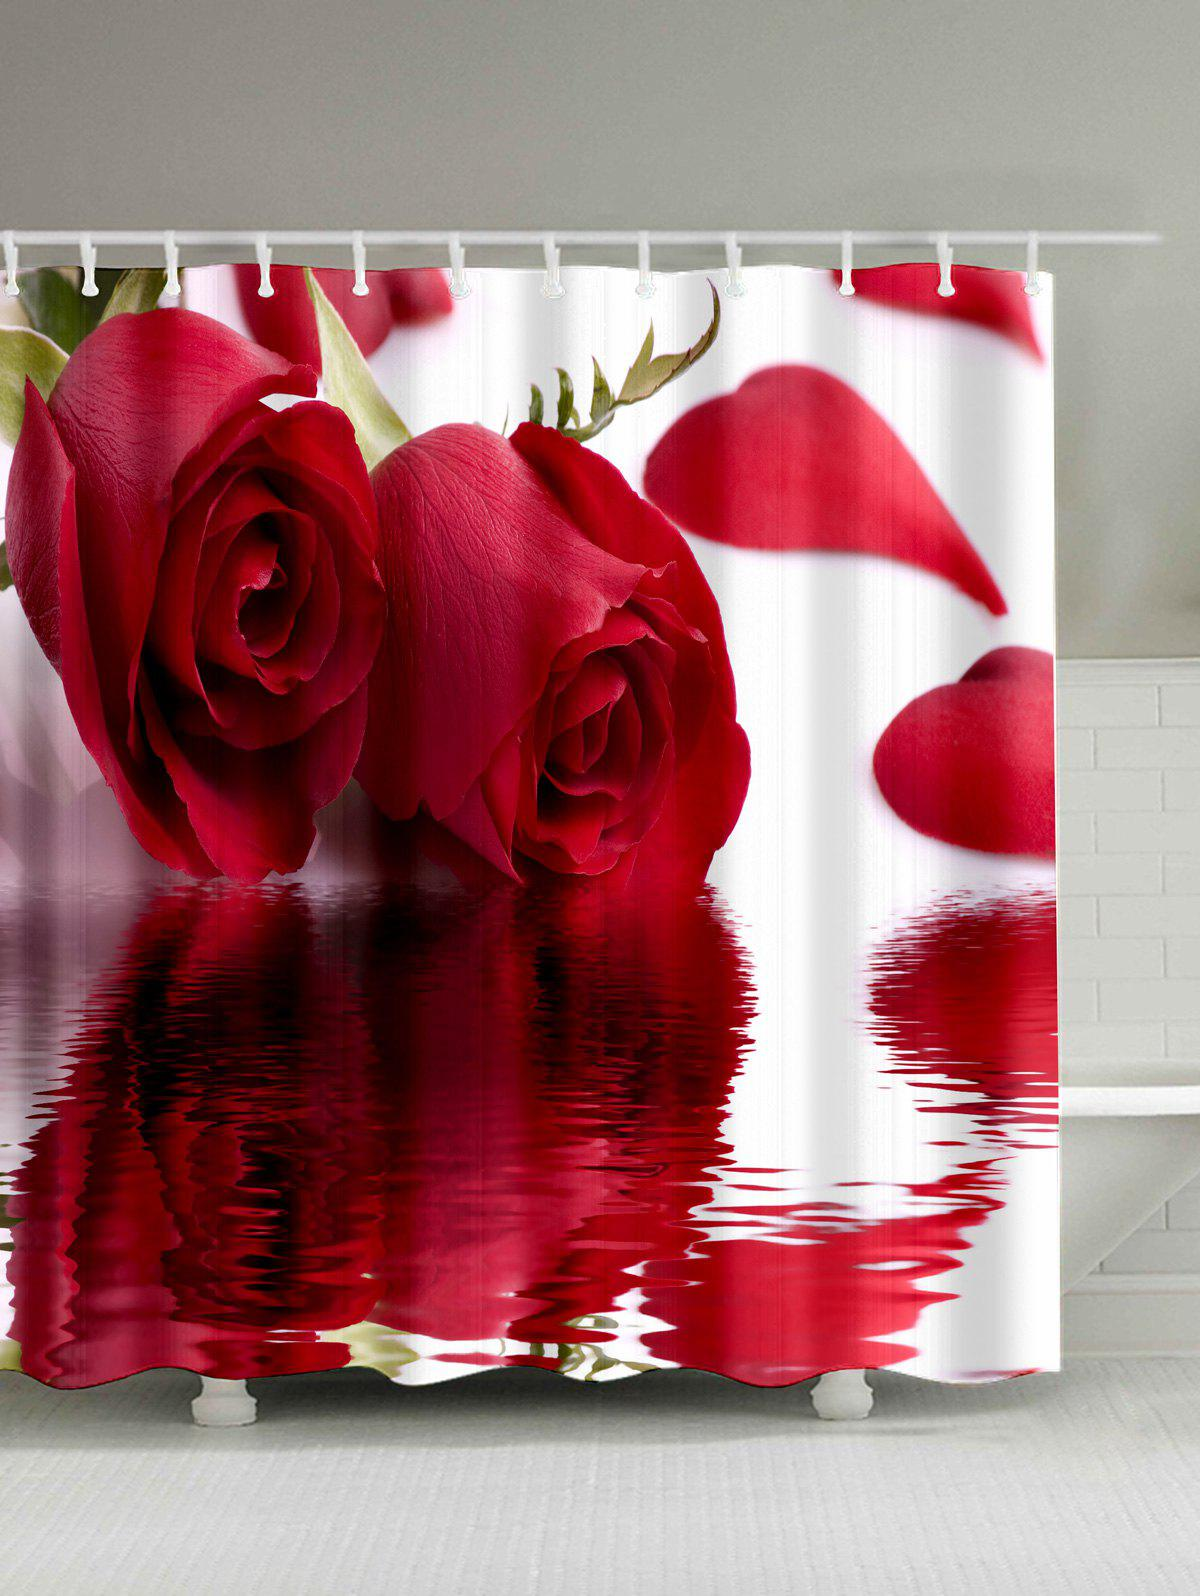 Roses Inverted Image Print Shower Curtain - ROSE